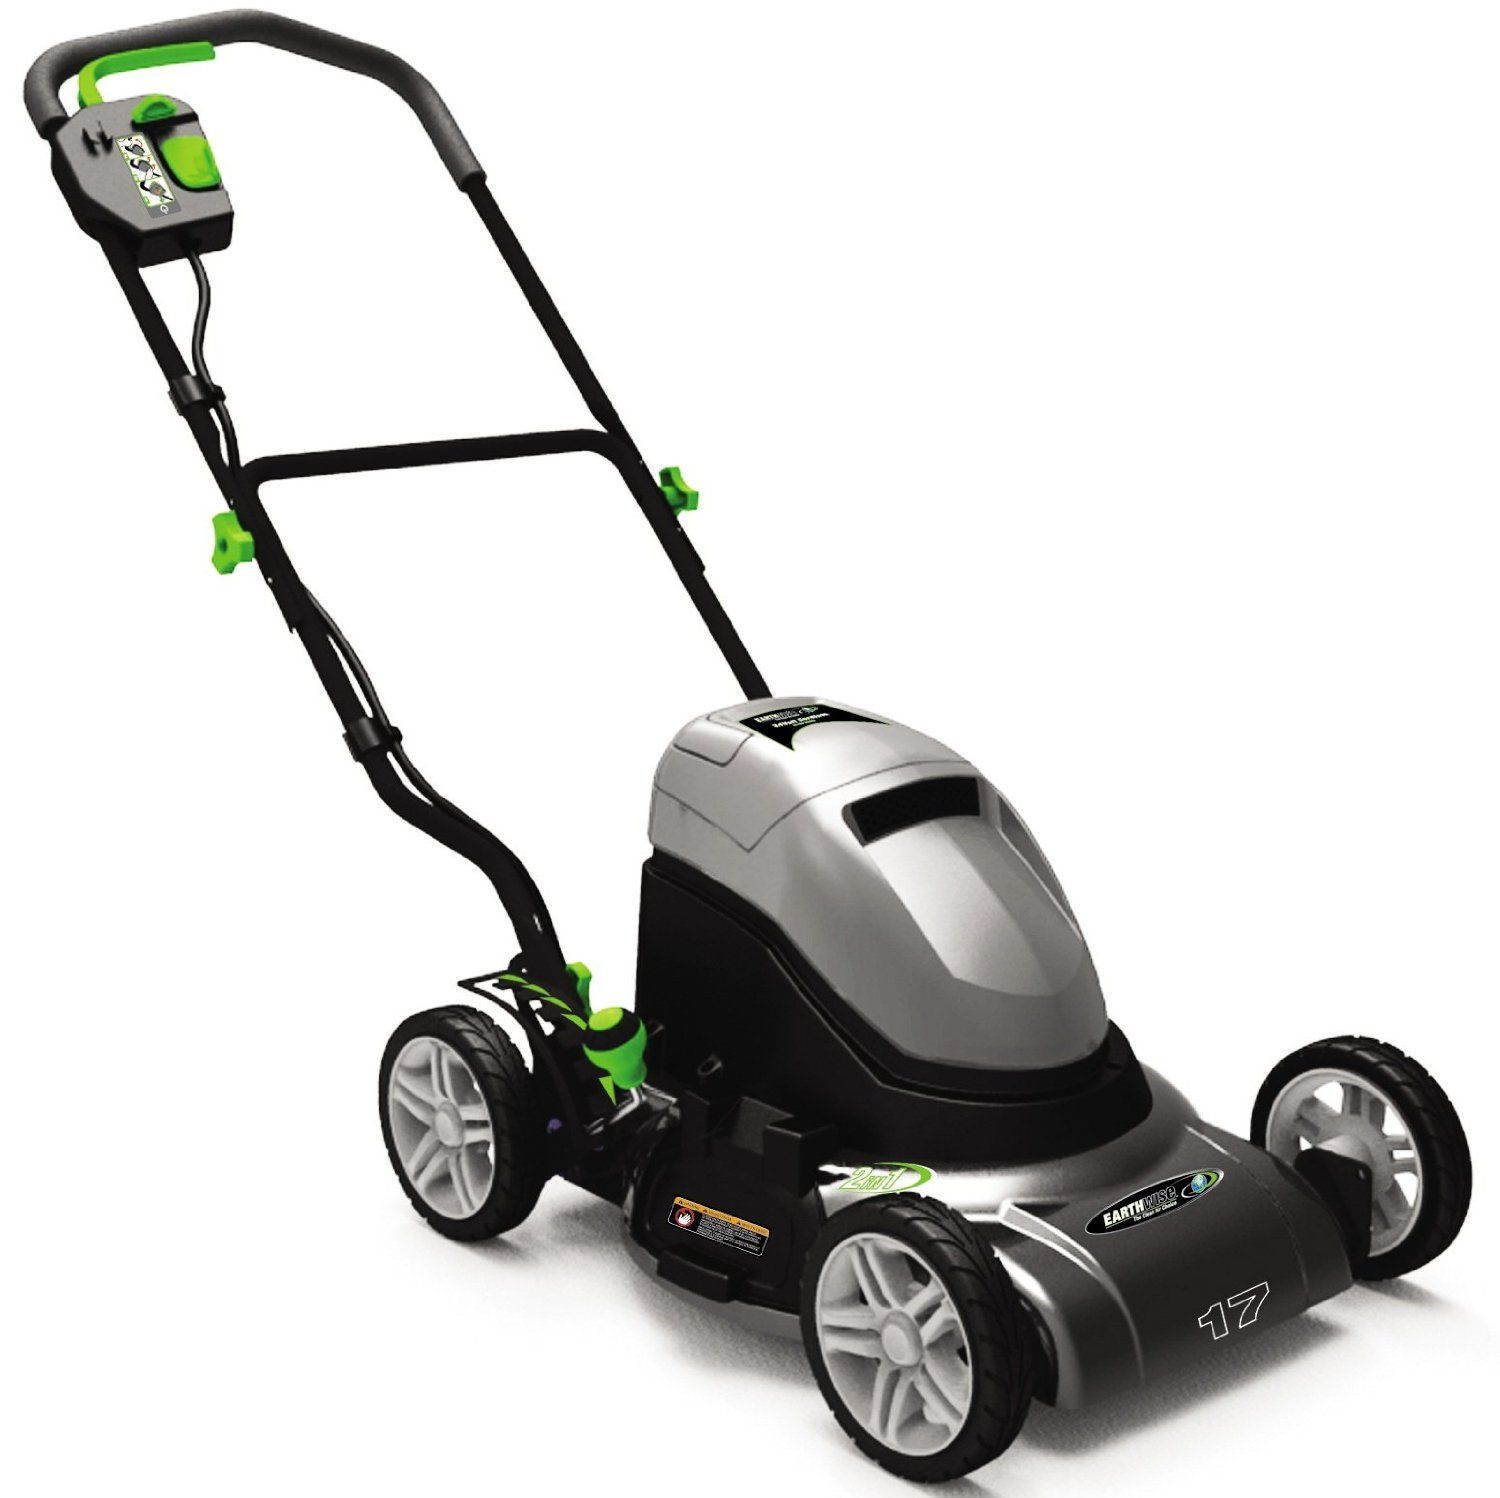 Earthwise 60217 17 Inch 24 Volt Side Discharge Mulching Cordless Electric Lawn Mower Cordless Lawn Mower Lawn Mower Lawn Mower Tractor